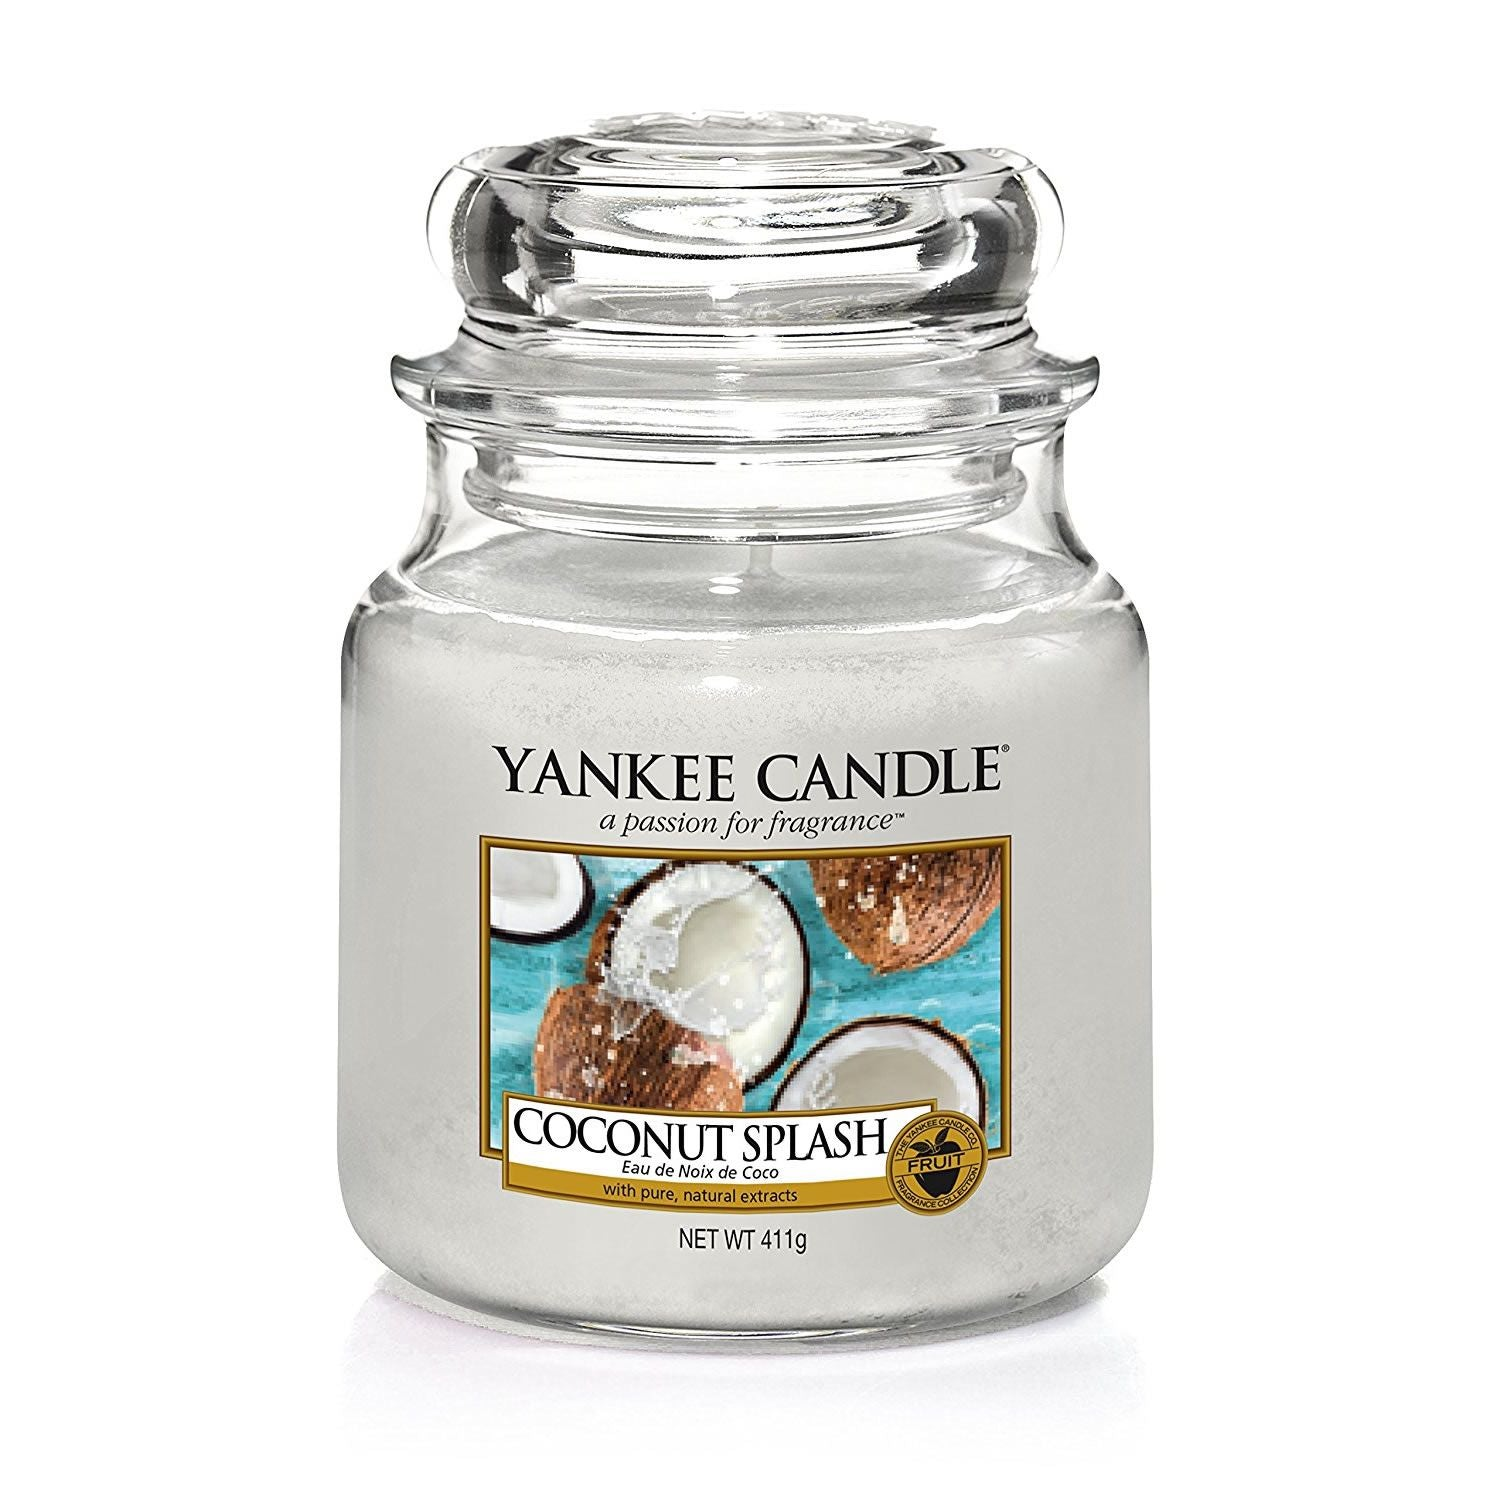 Yankee Candle Coconut Splash Medium Jar - TOSYS Candles and Gifts